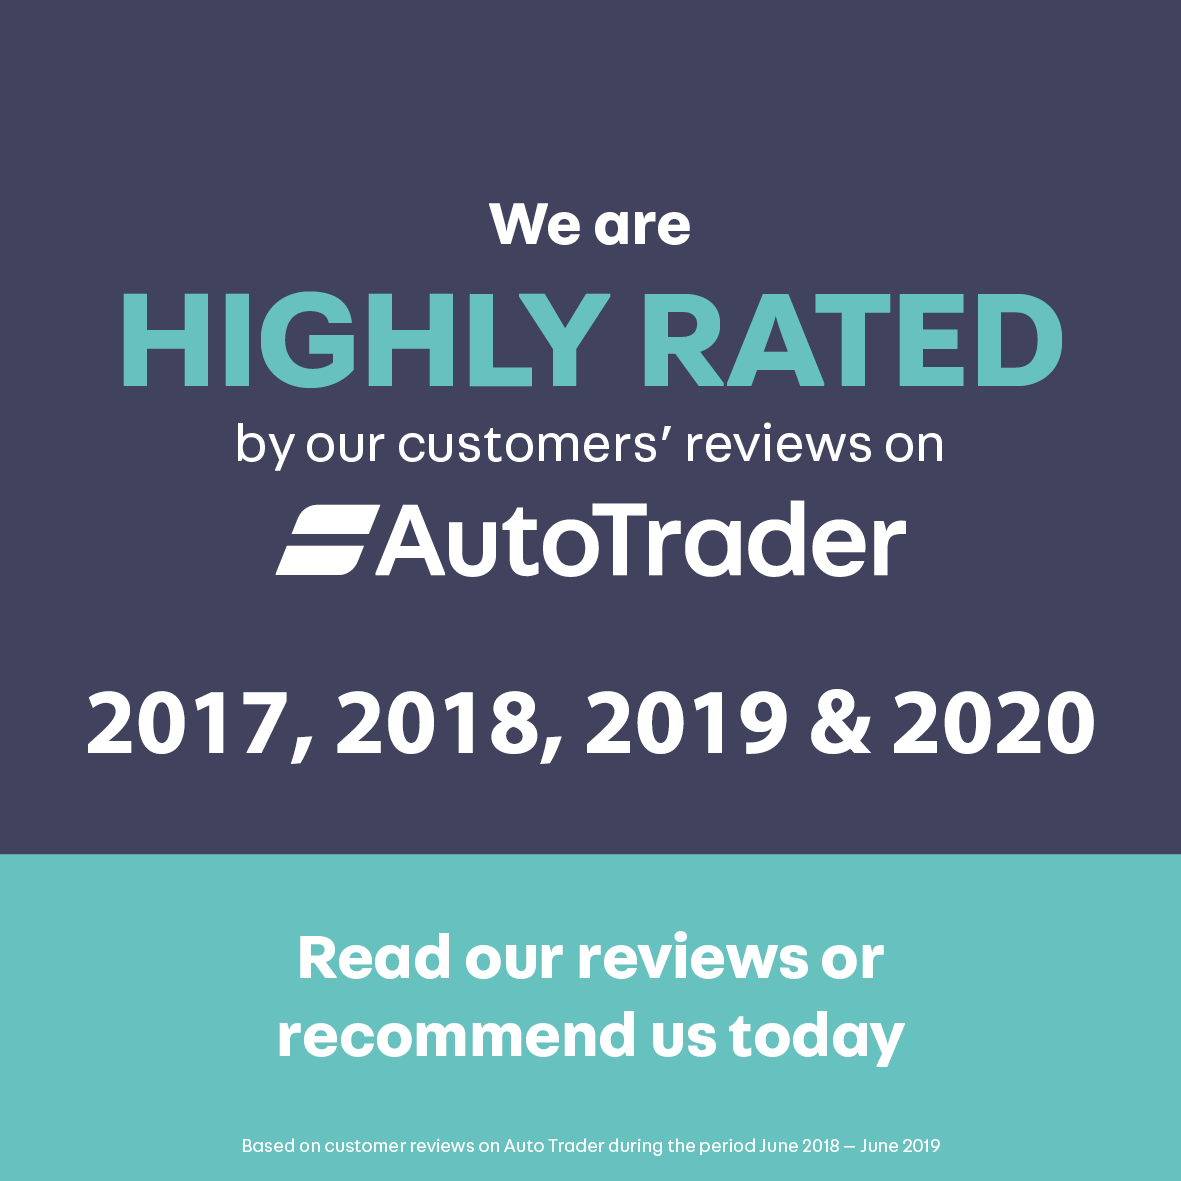 St Andrews - Highly Rated on Autotrader